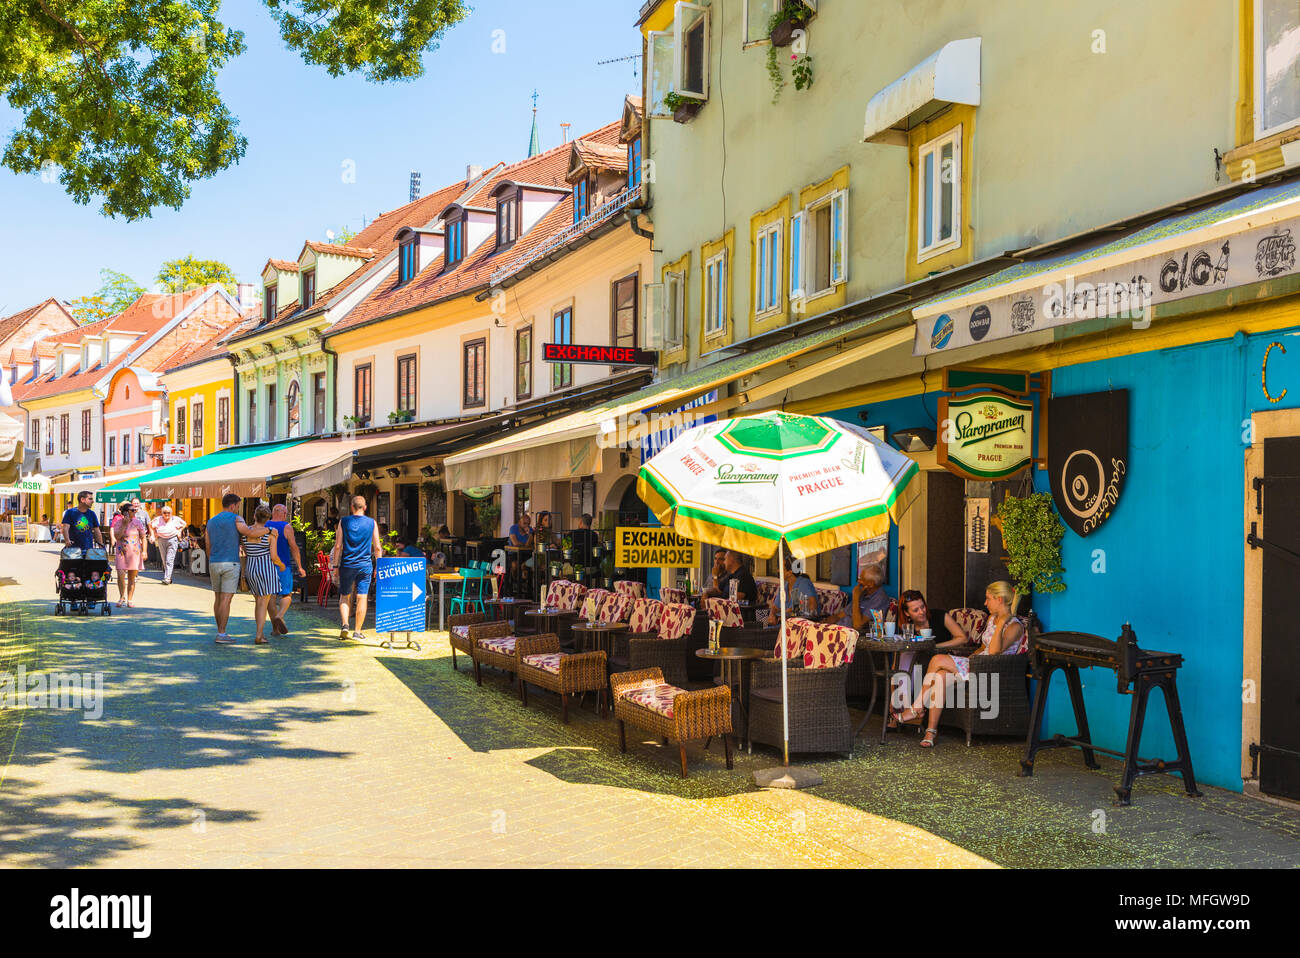 Cafe Street Scene Zagreb Croatia High Resolution Stock Photography And Images Alamy